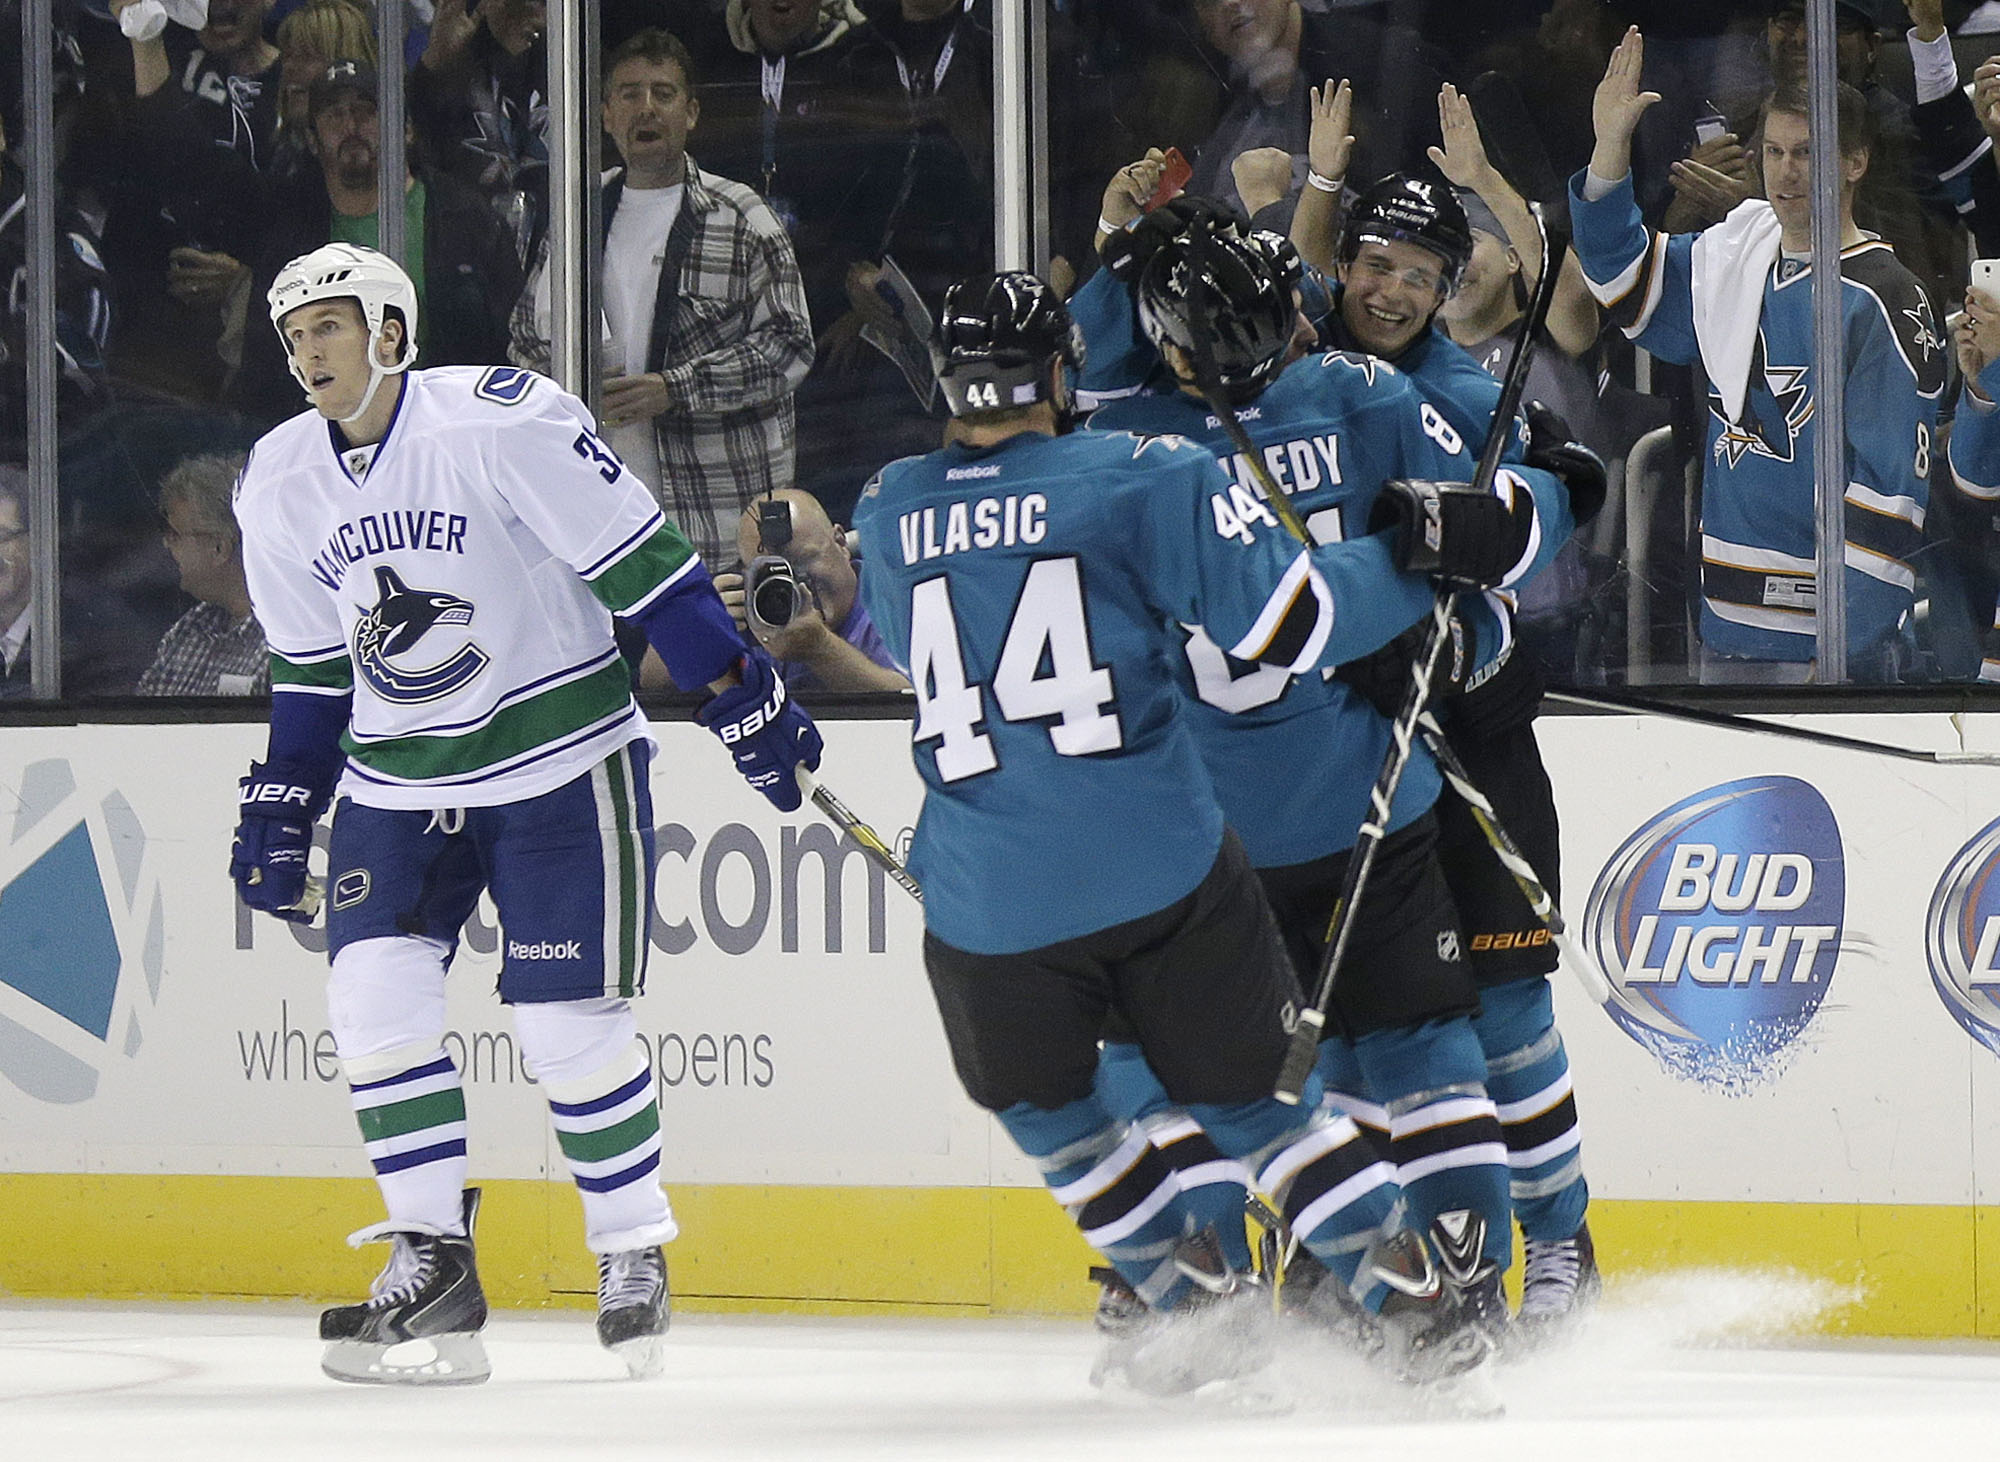 San Jose Sharks' Justin Braun, right, is hugged by teammates Tyler Kennedy and Marc-Edouard Vlasic (44) after scoring against the Vancouver Canucks during the second period of an NHL hockey game on Thursday, Oct. 3, 2013, in San Jose, Calif. Canucks' Dale Weise is at left